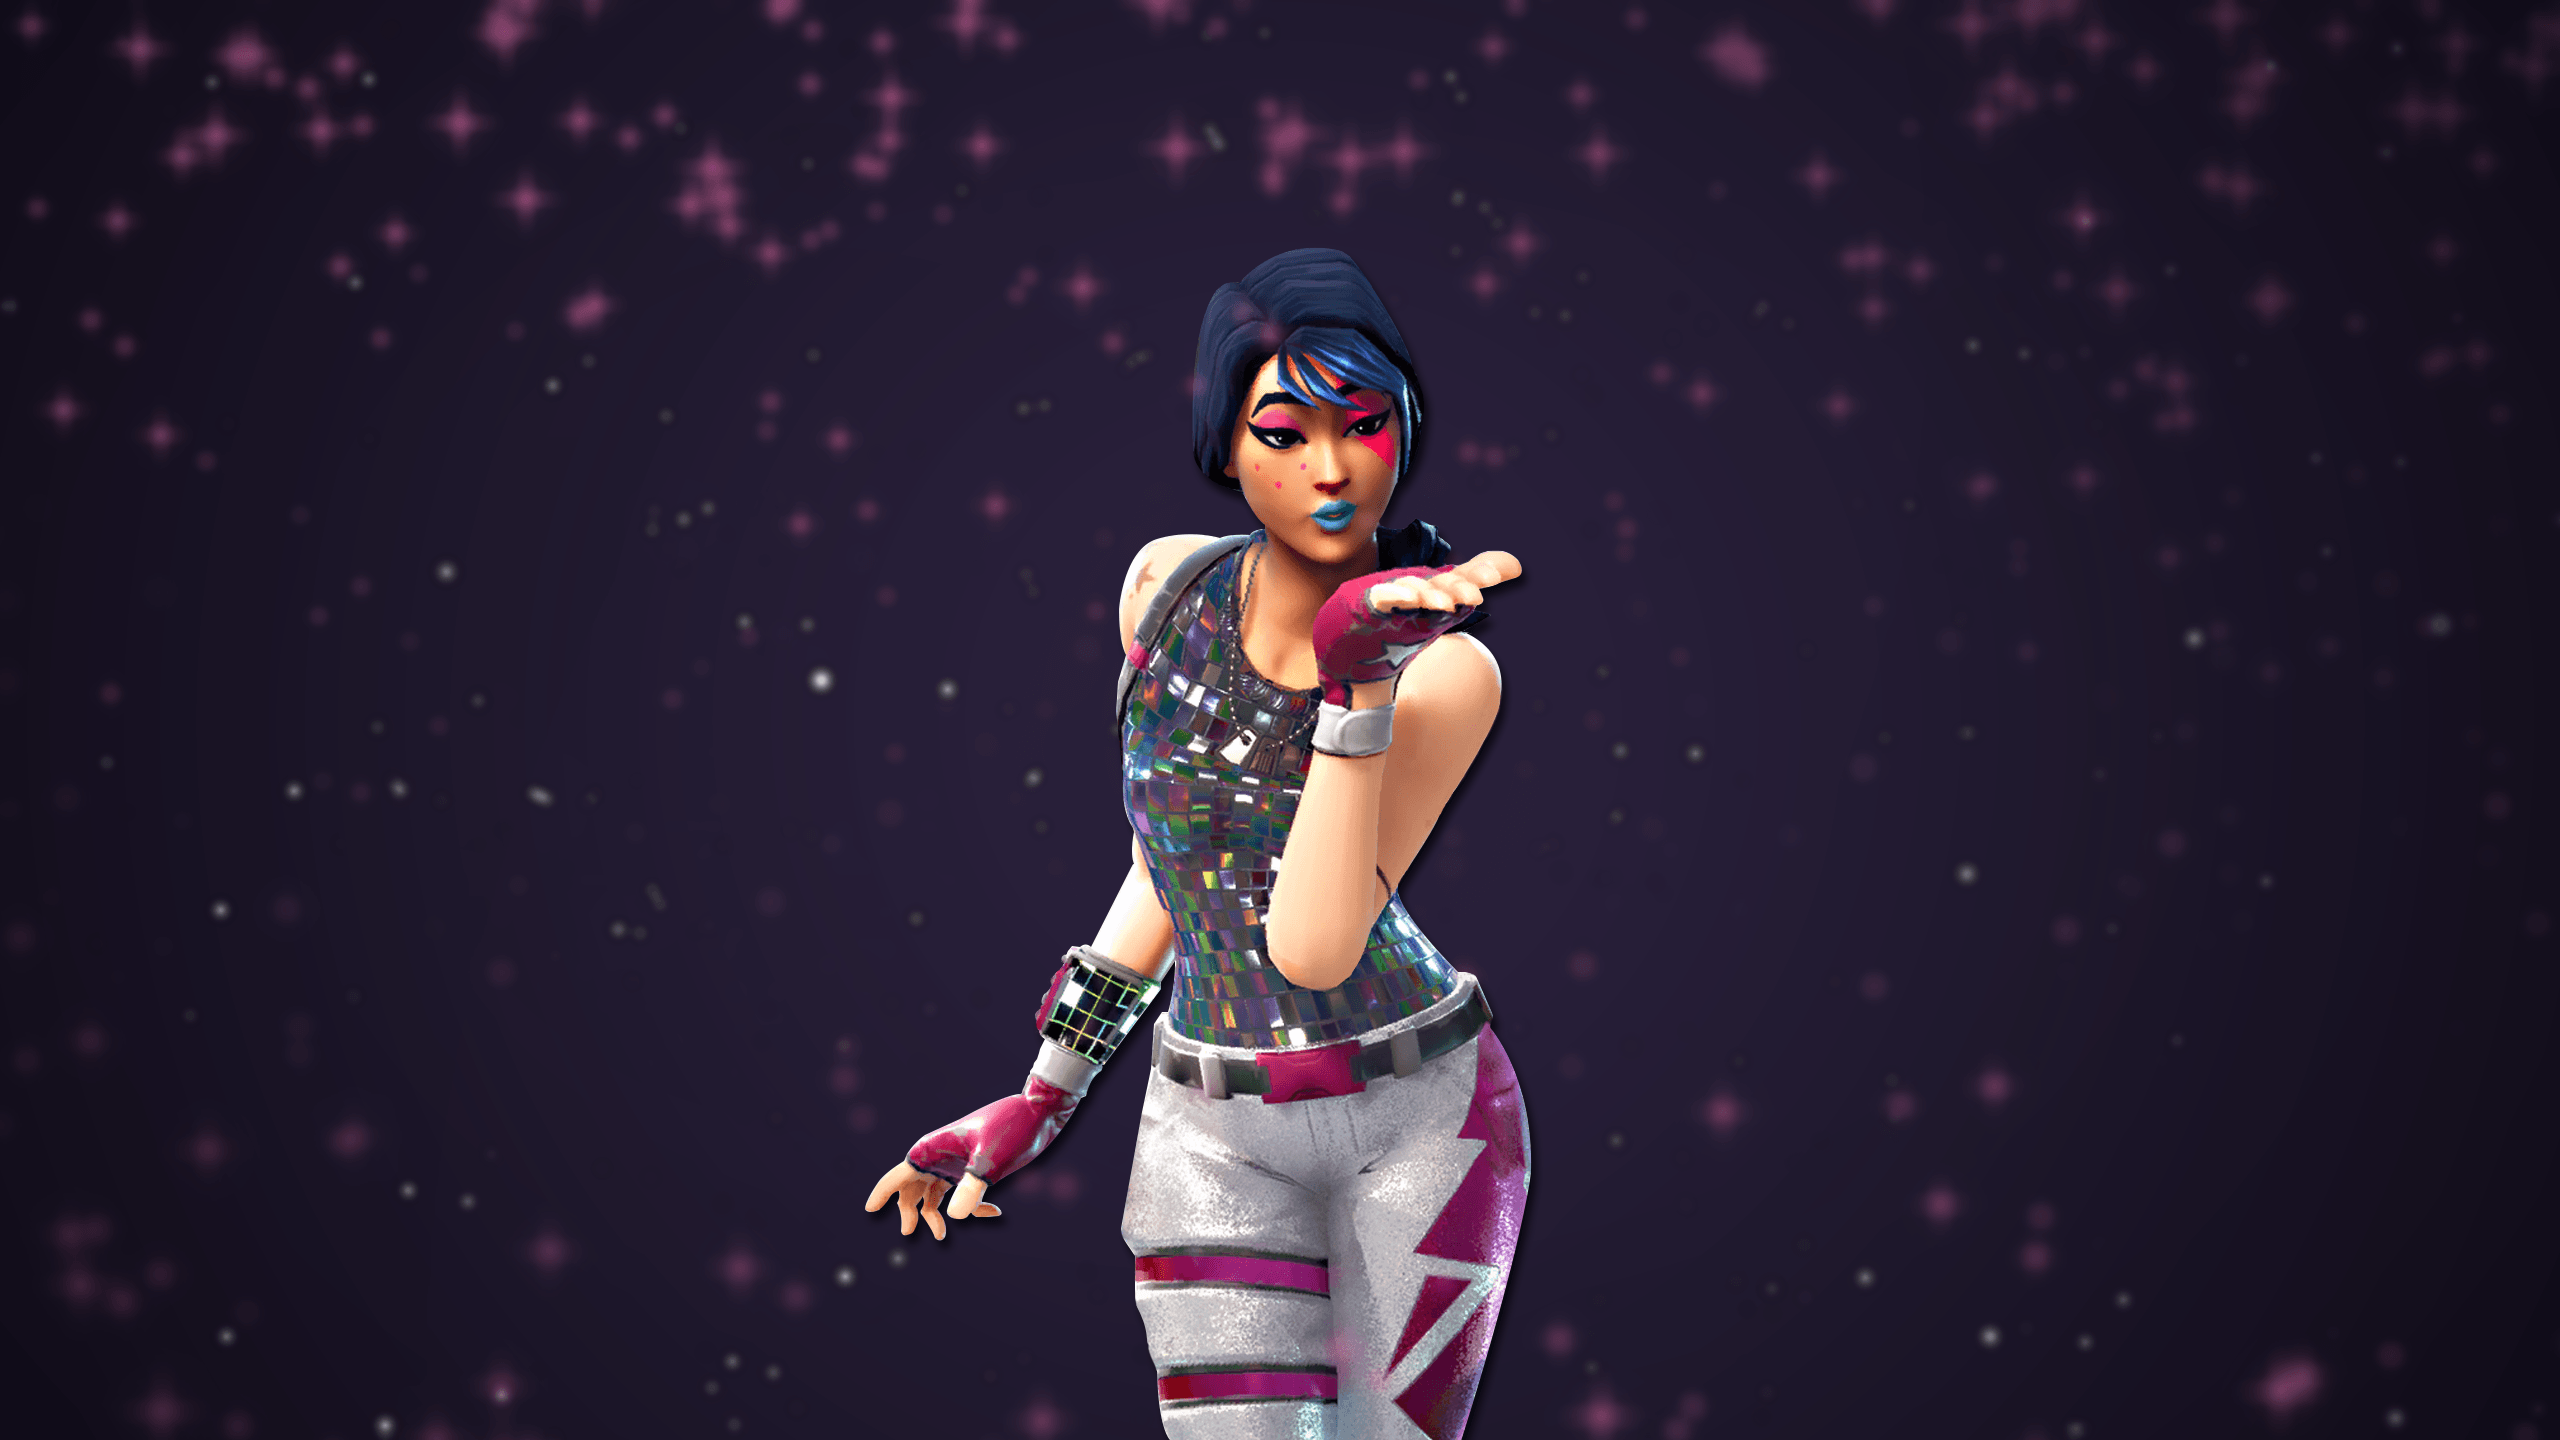 Sparkle Specialist Wallpaper : FortNiteBR